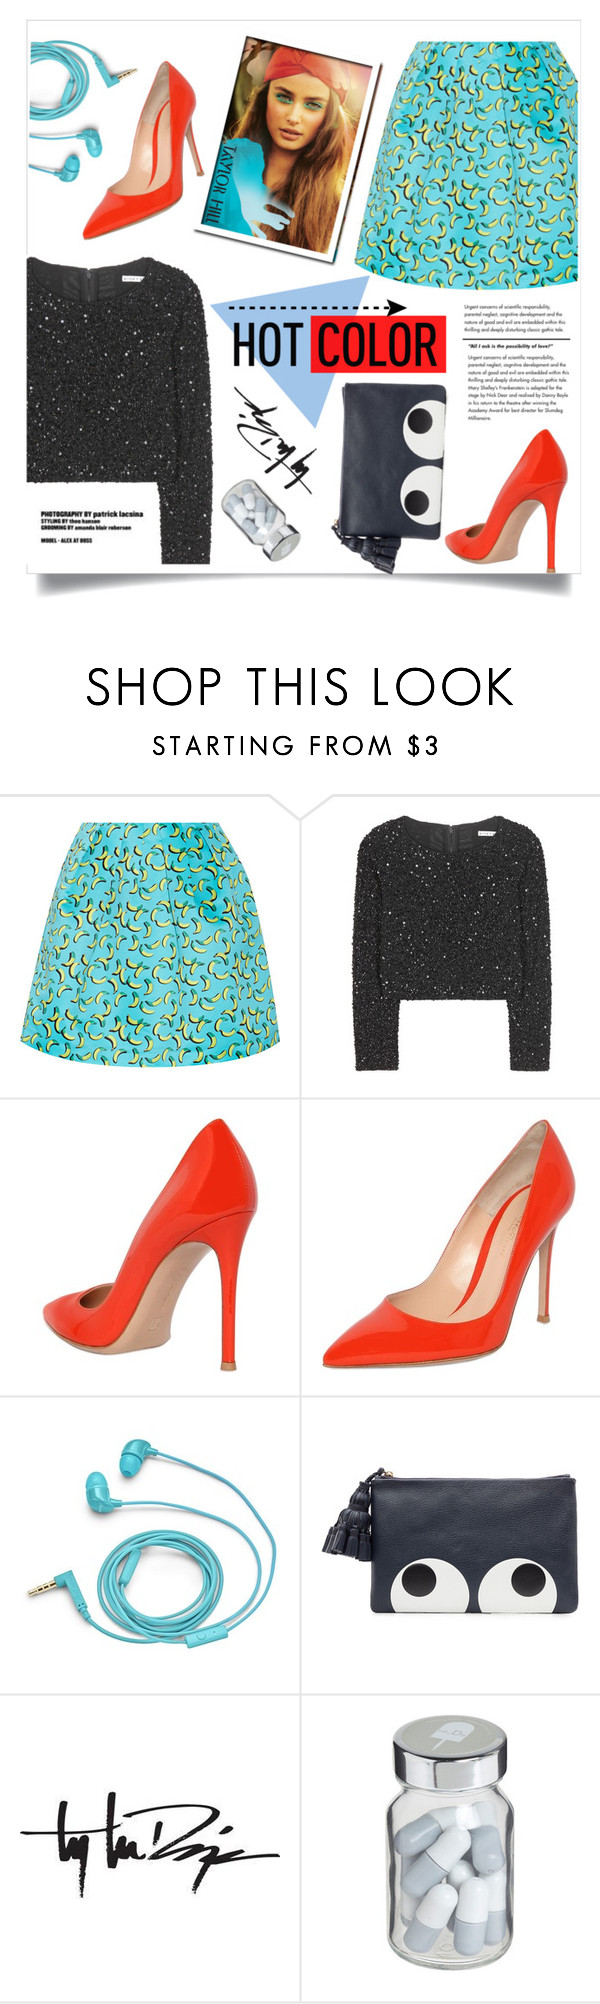 """""""she's addicted to the song lyrics that spill out of her heart"""" by tanyatoms13 ❤ liked on Polyvore featuring Markus Lupfer, Alice + Olivia, Gianvito Rossi, FOSSIL, Anya Hindmarch, Troy Lee Designs and Vita"""